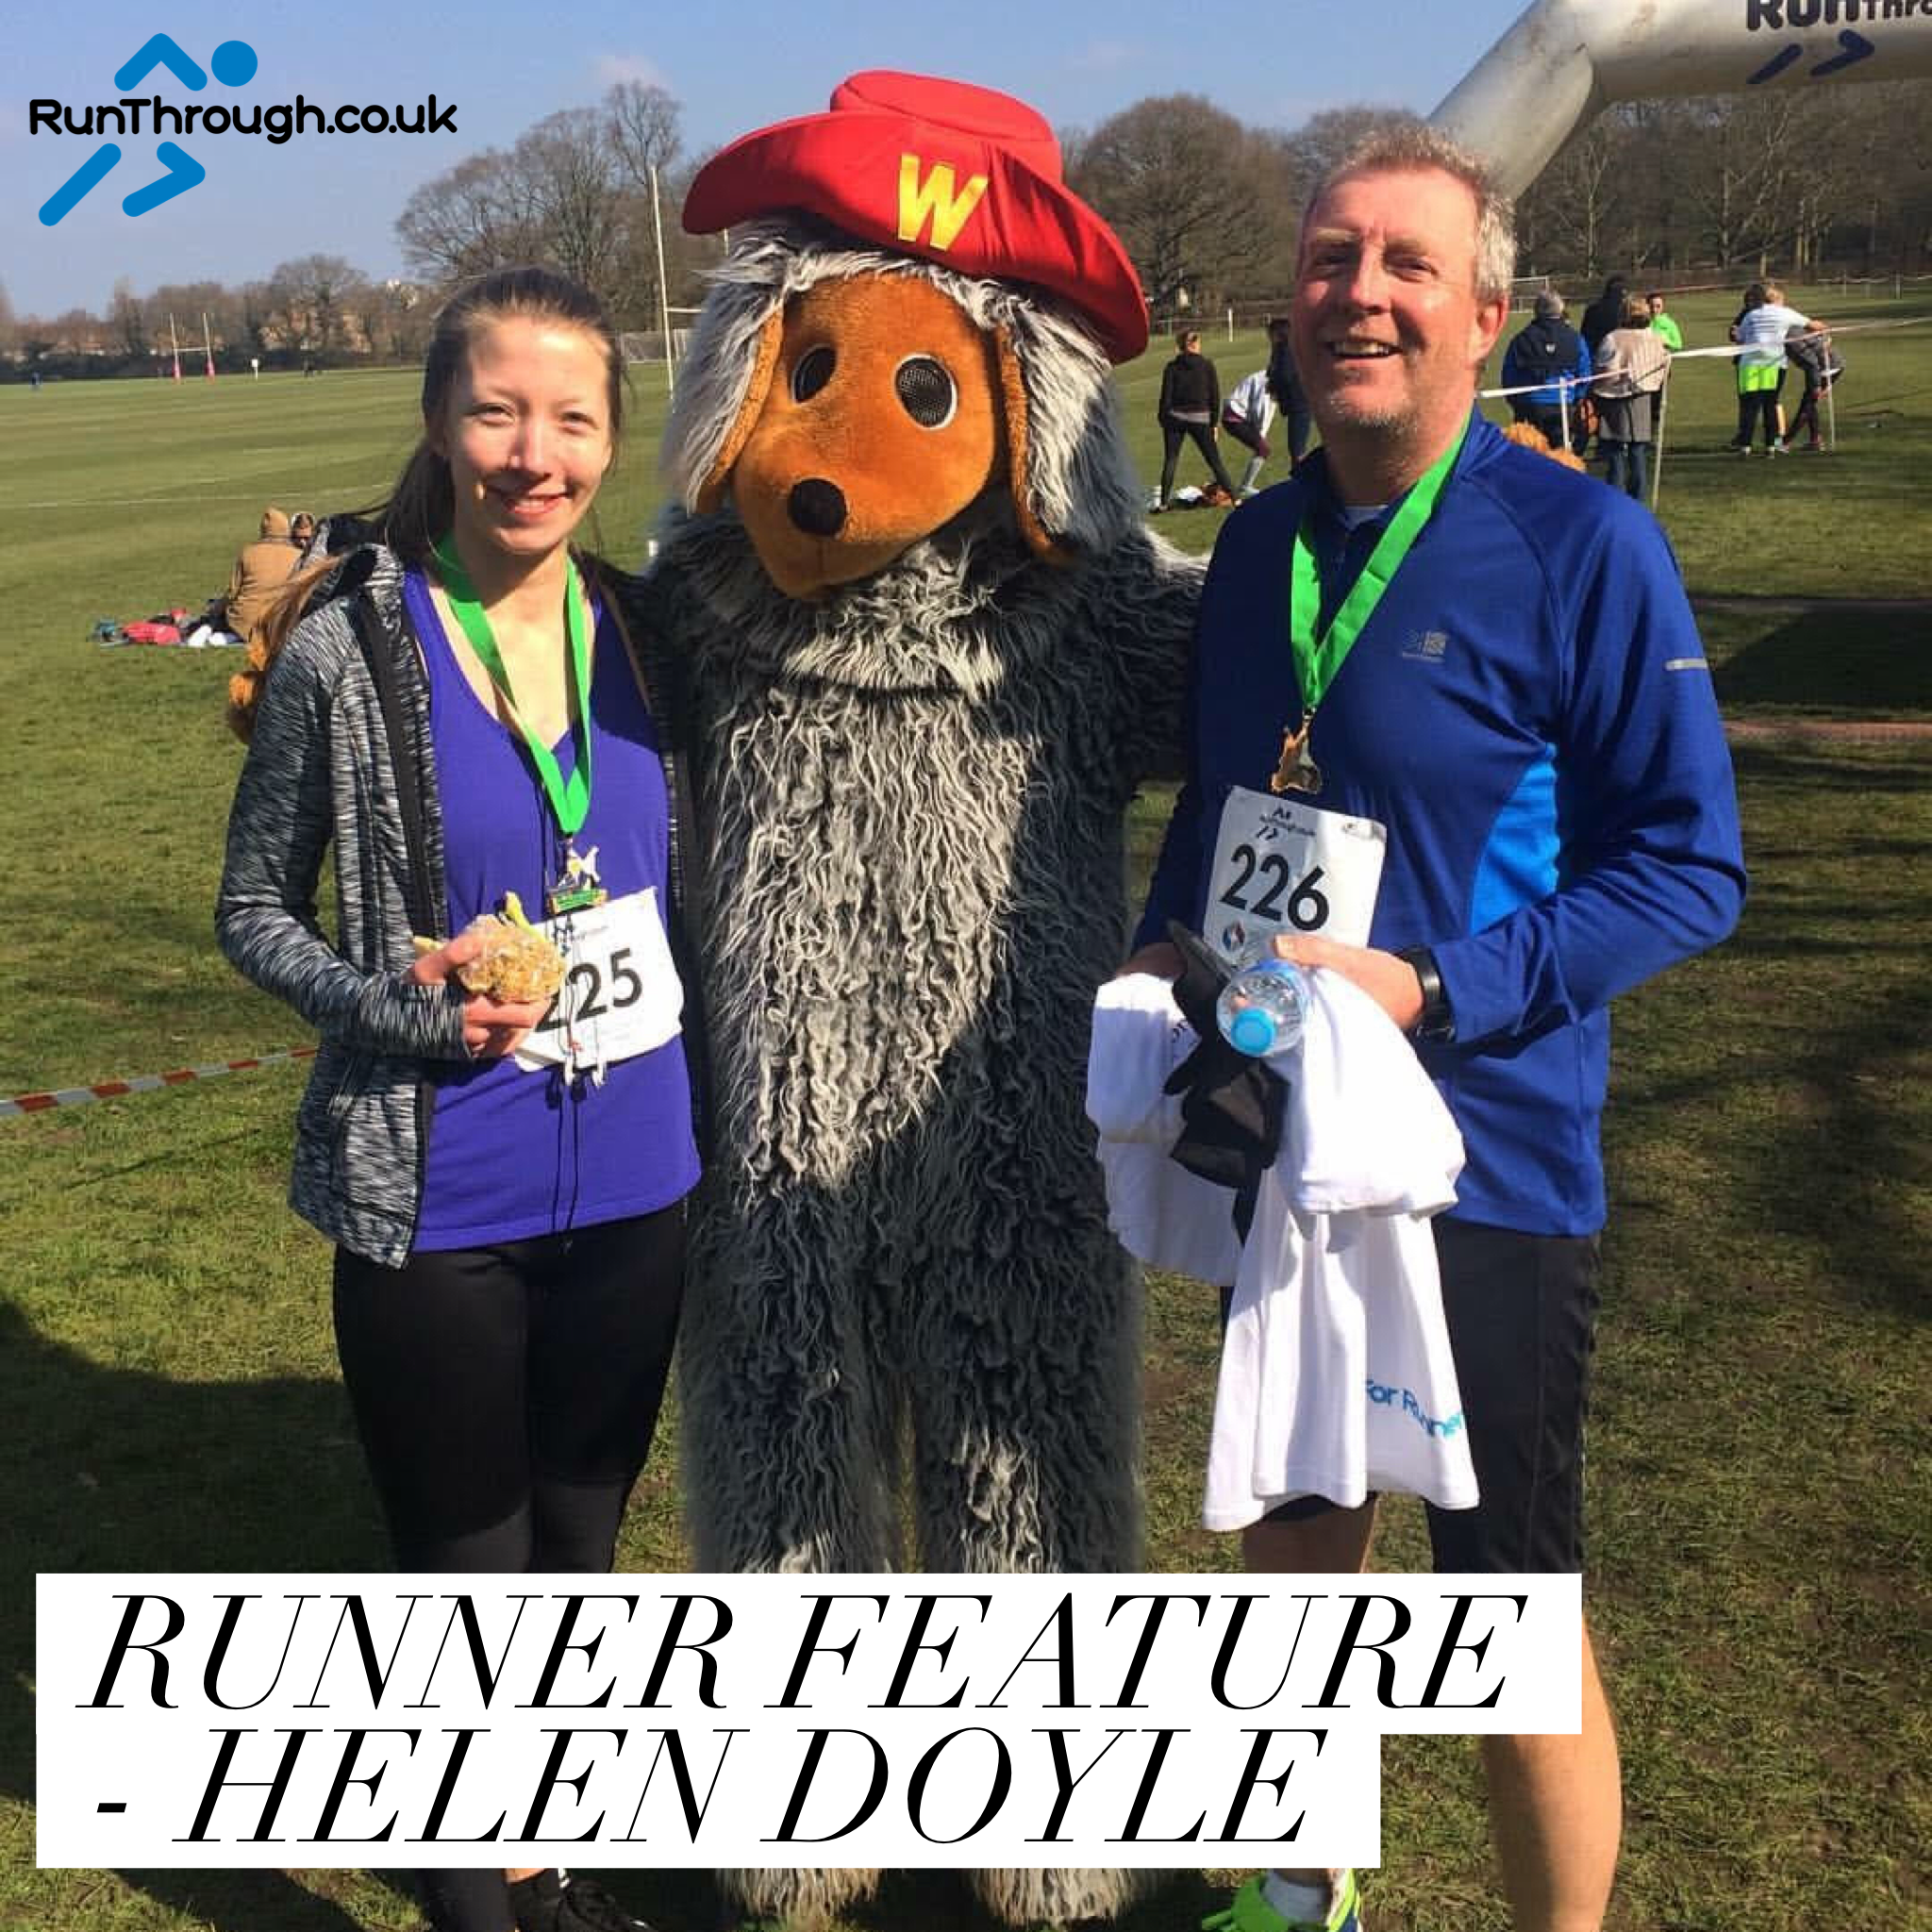 Runner Feature – Helen Doyle